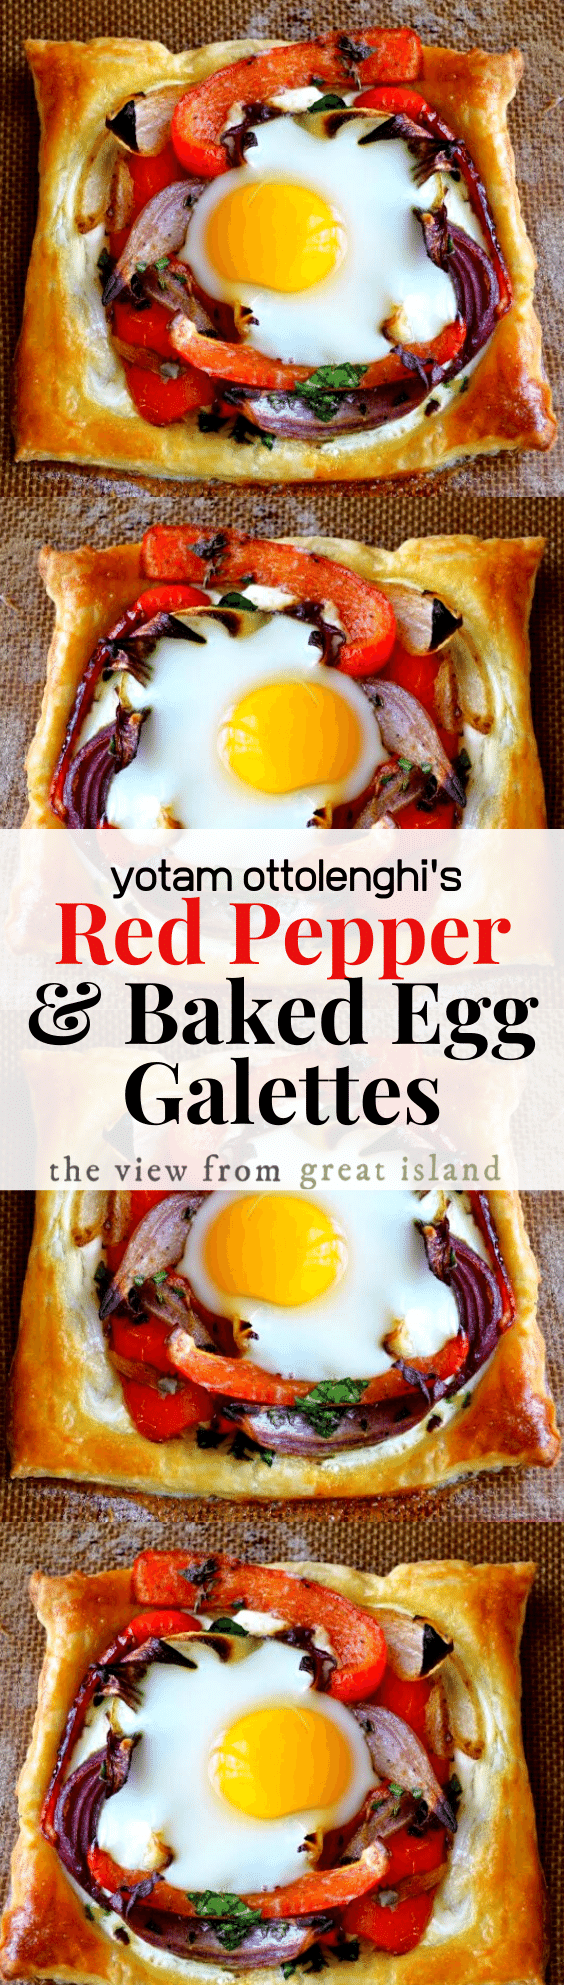 red pepper and egg galettes pin